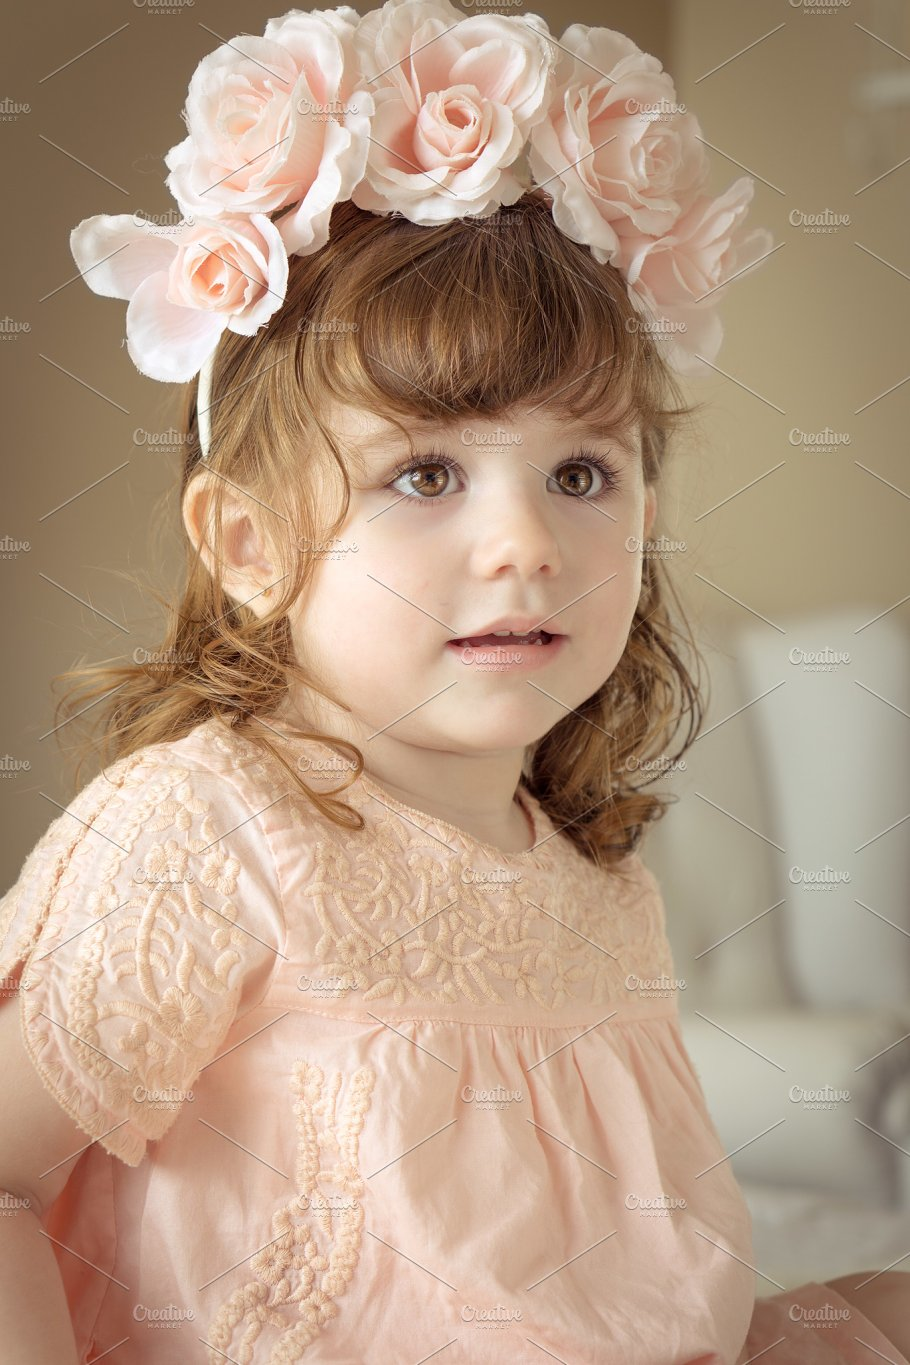 Boho little girl with flower crown beauty fashion photos boho little girl with flower crown beauty fashion izmirmasajfo